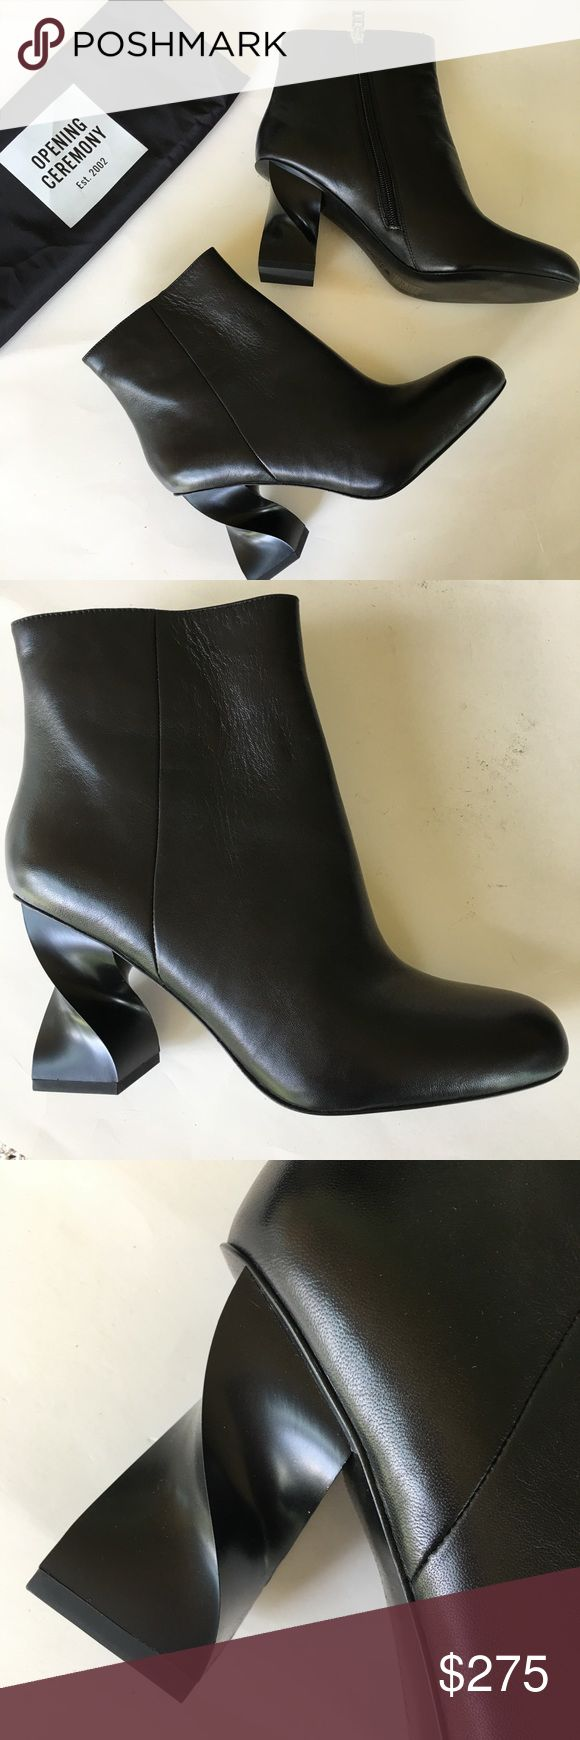 NEW OPENING CEREMONY black spiral heel ankle boots B Opening Ceremony Shoes Ankle Boots & Booties